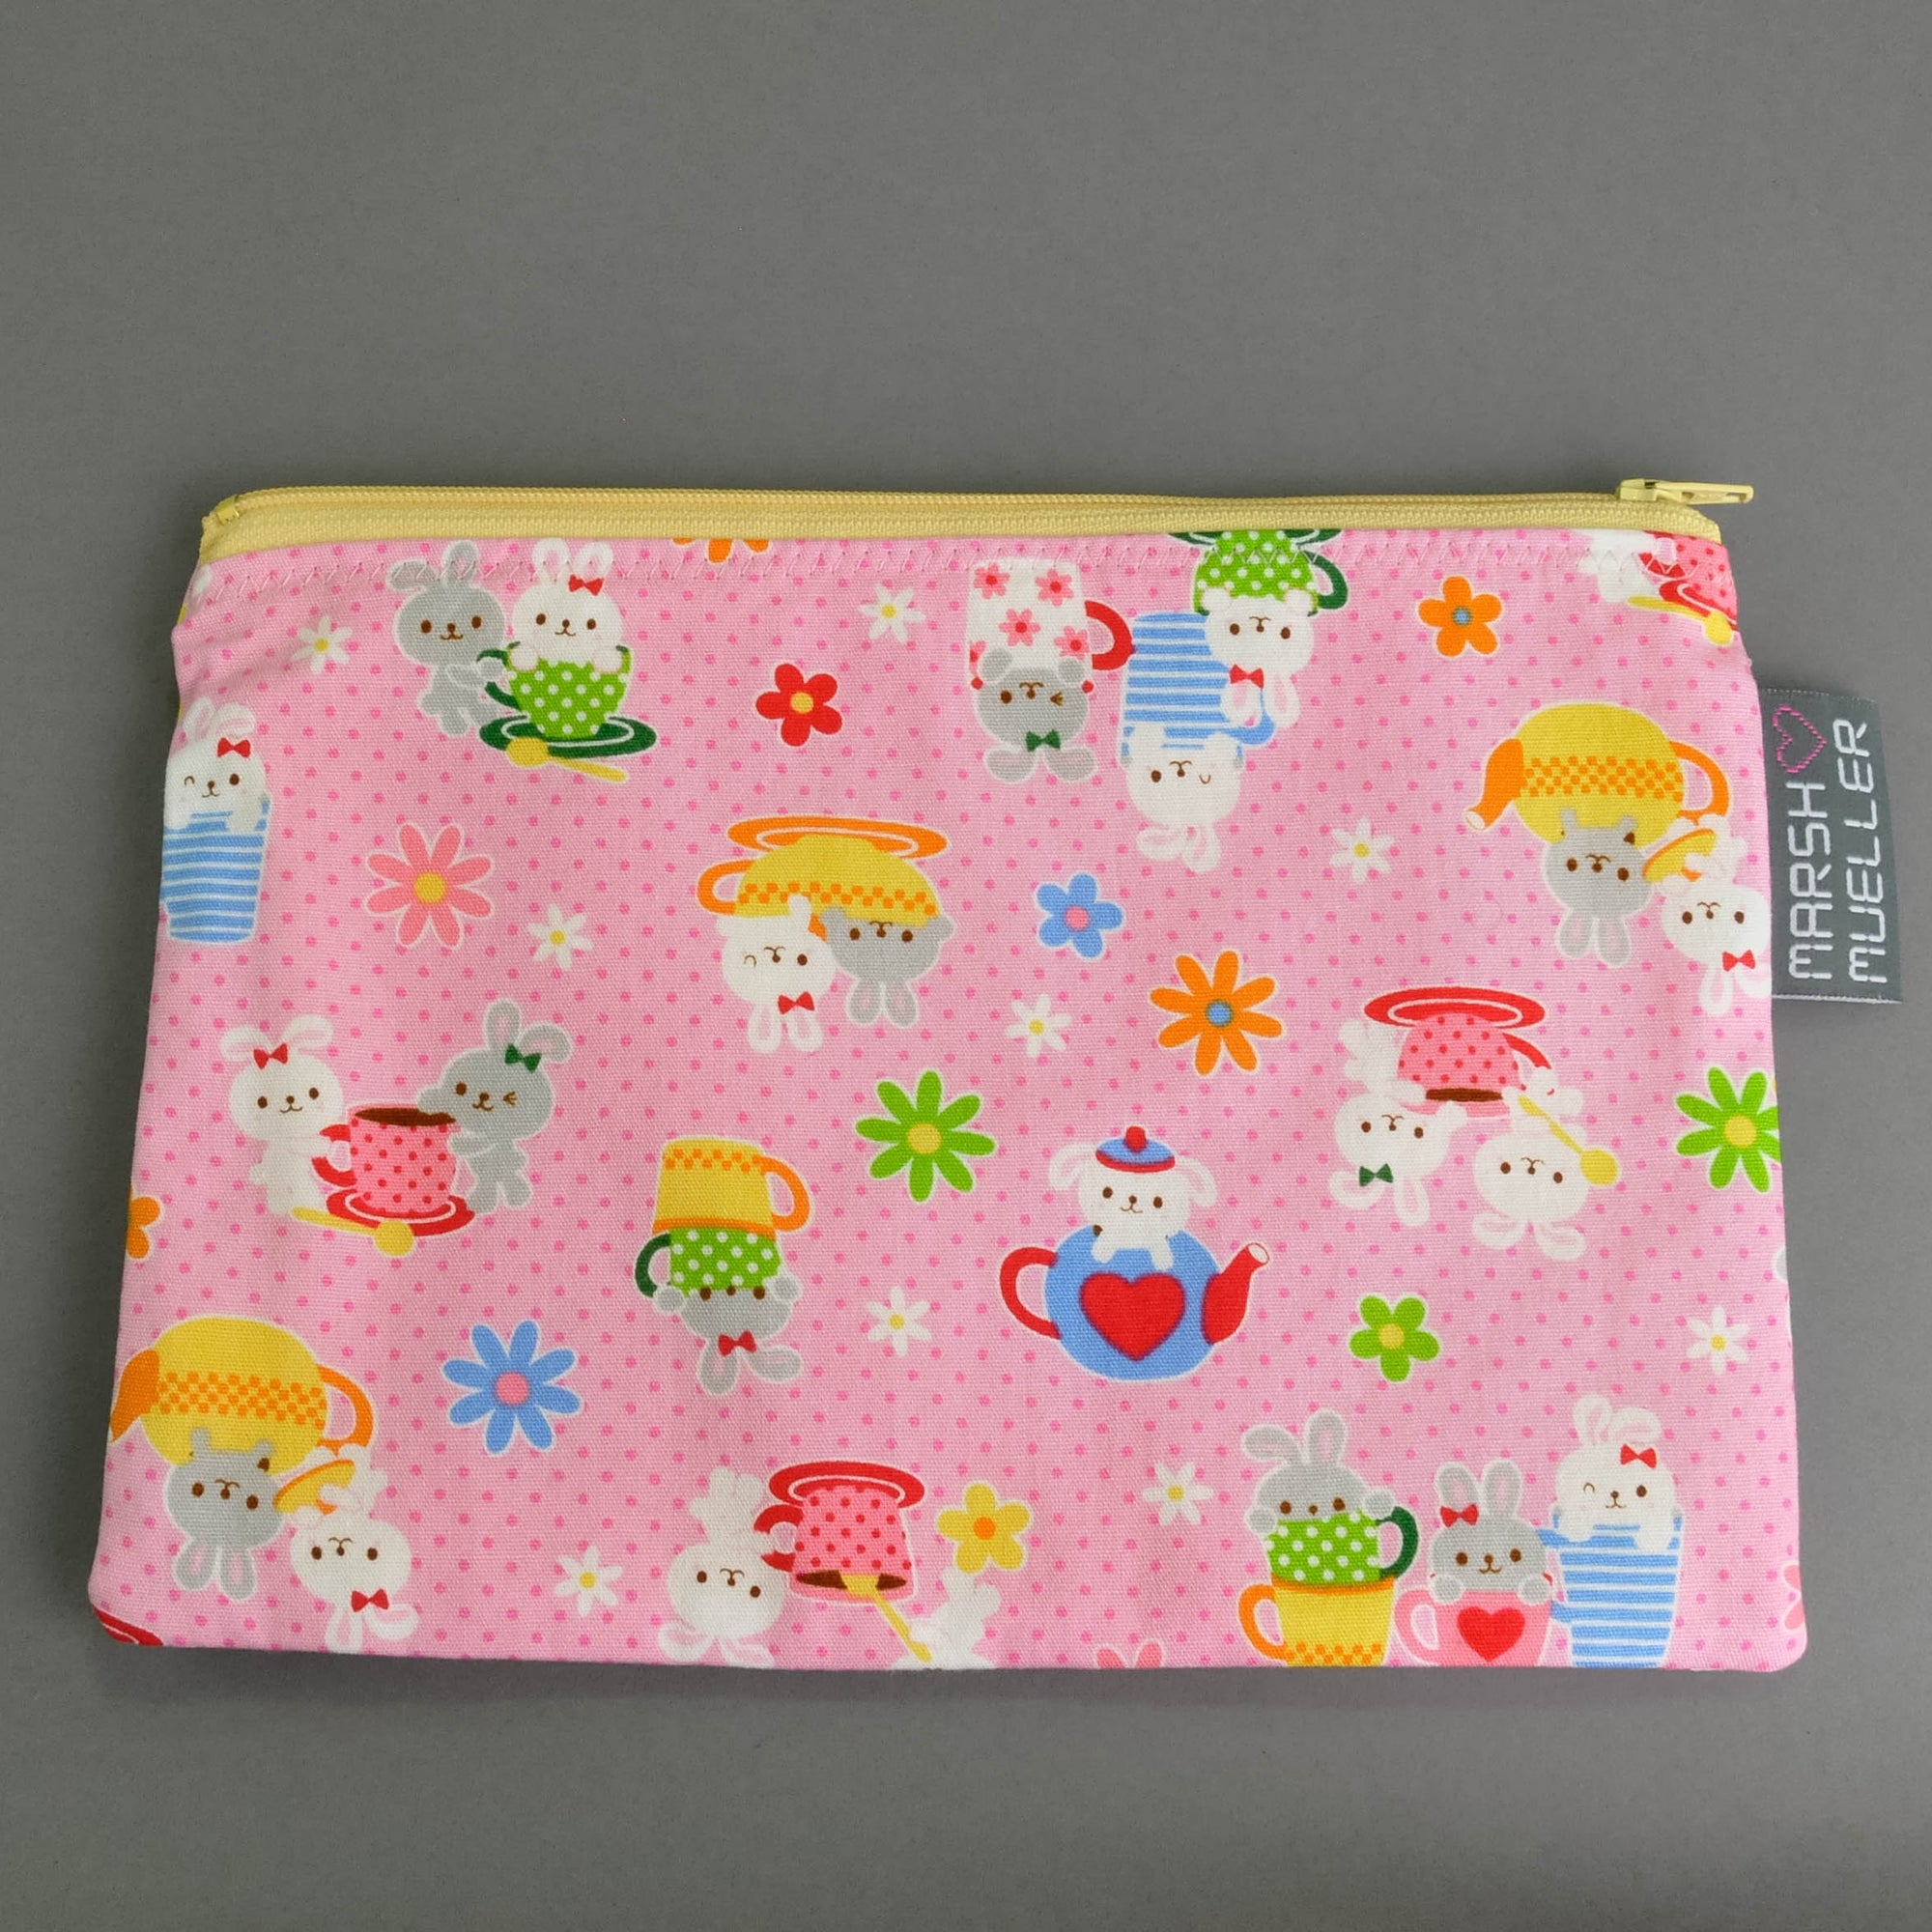 Bunny Tea Party Zippy Bag